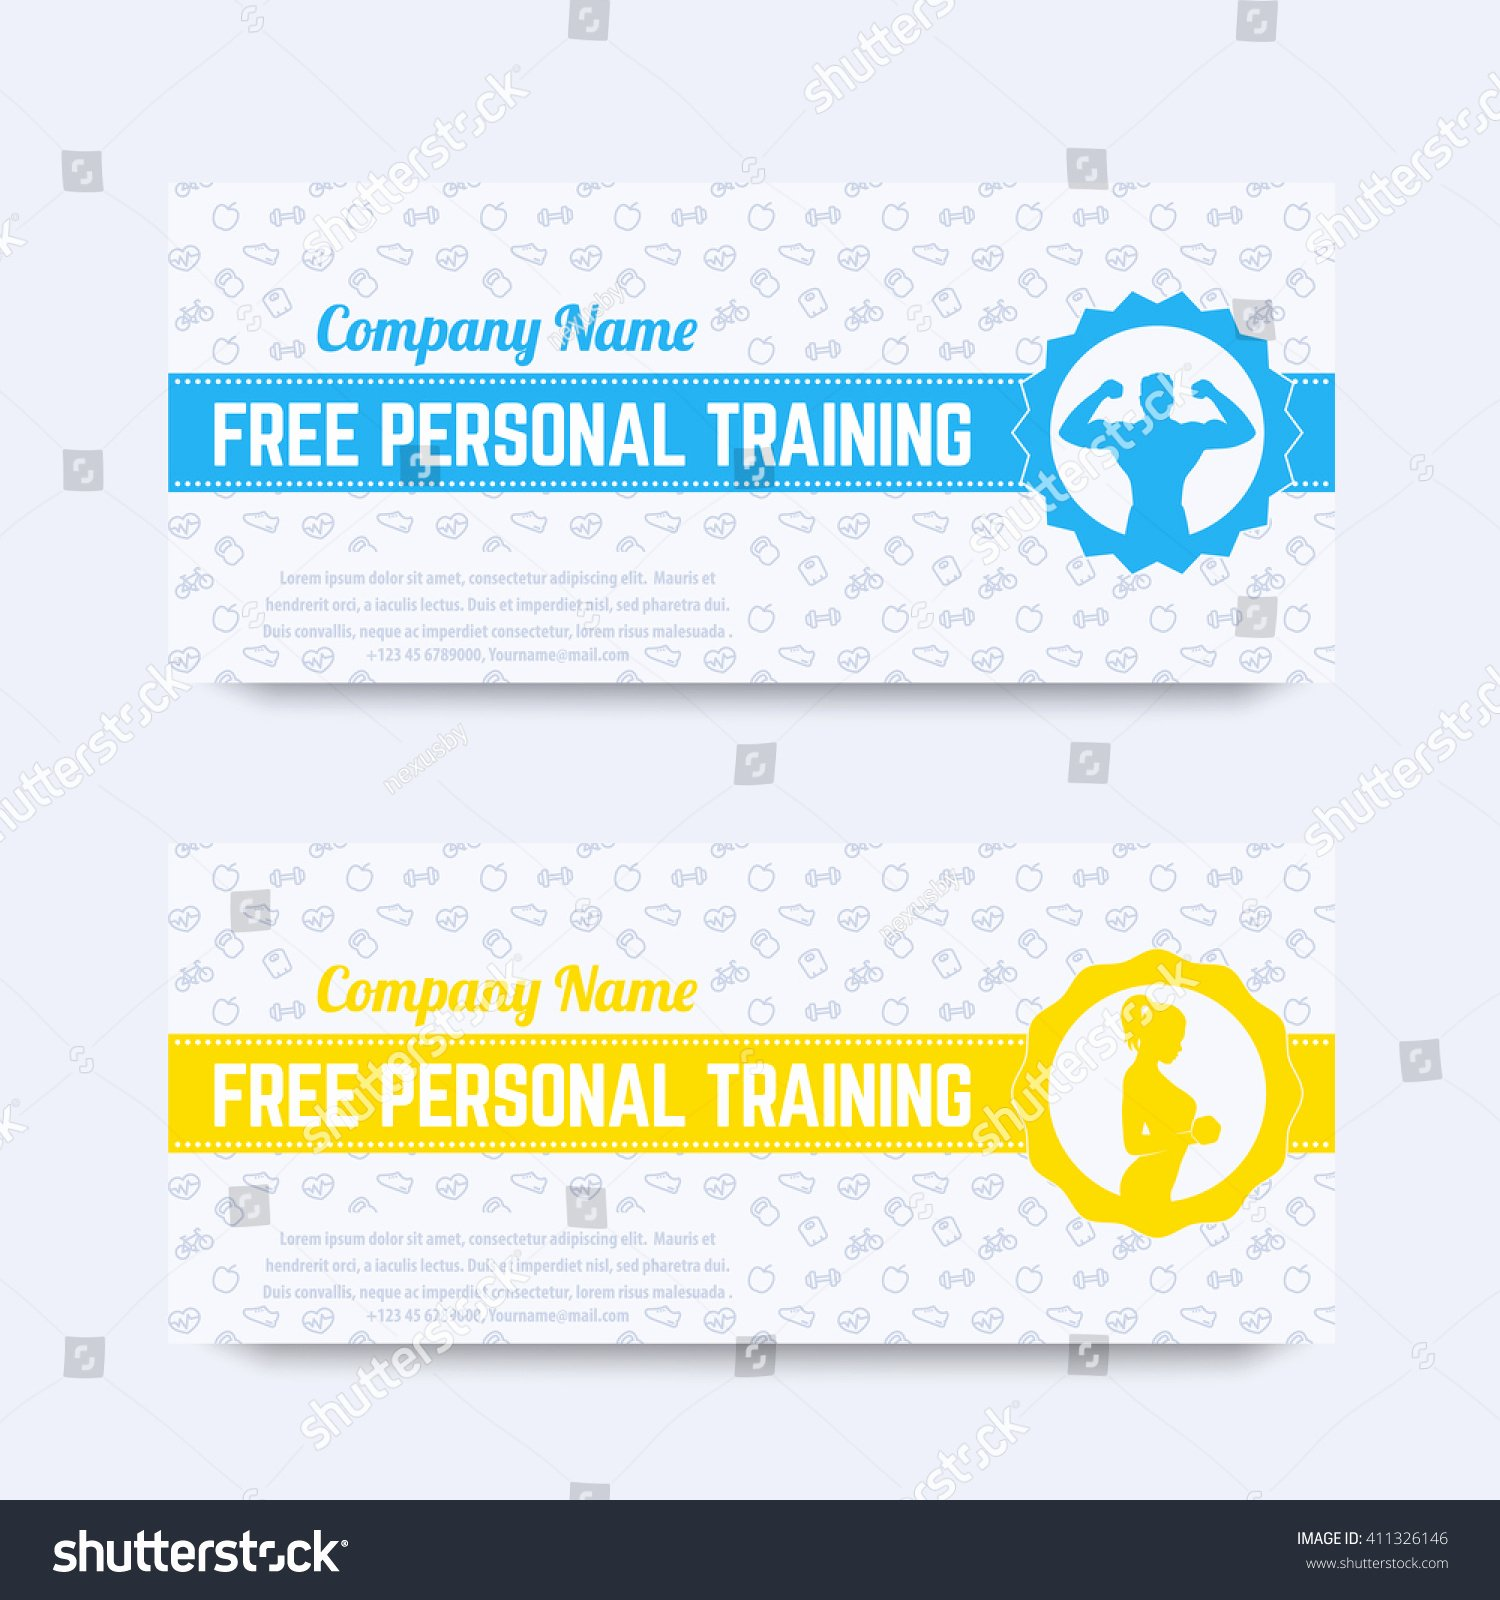 Fitness Gift Certificate Template Lovely Download Encyclopedia Systems and Control 2015